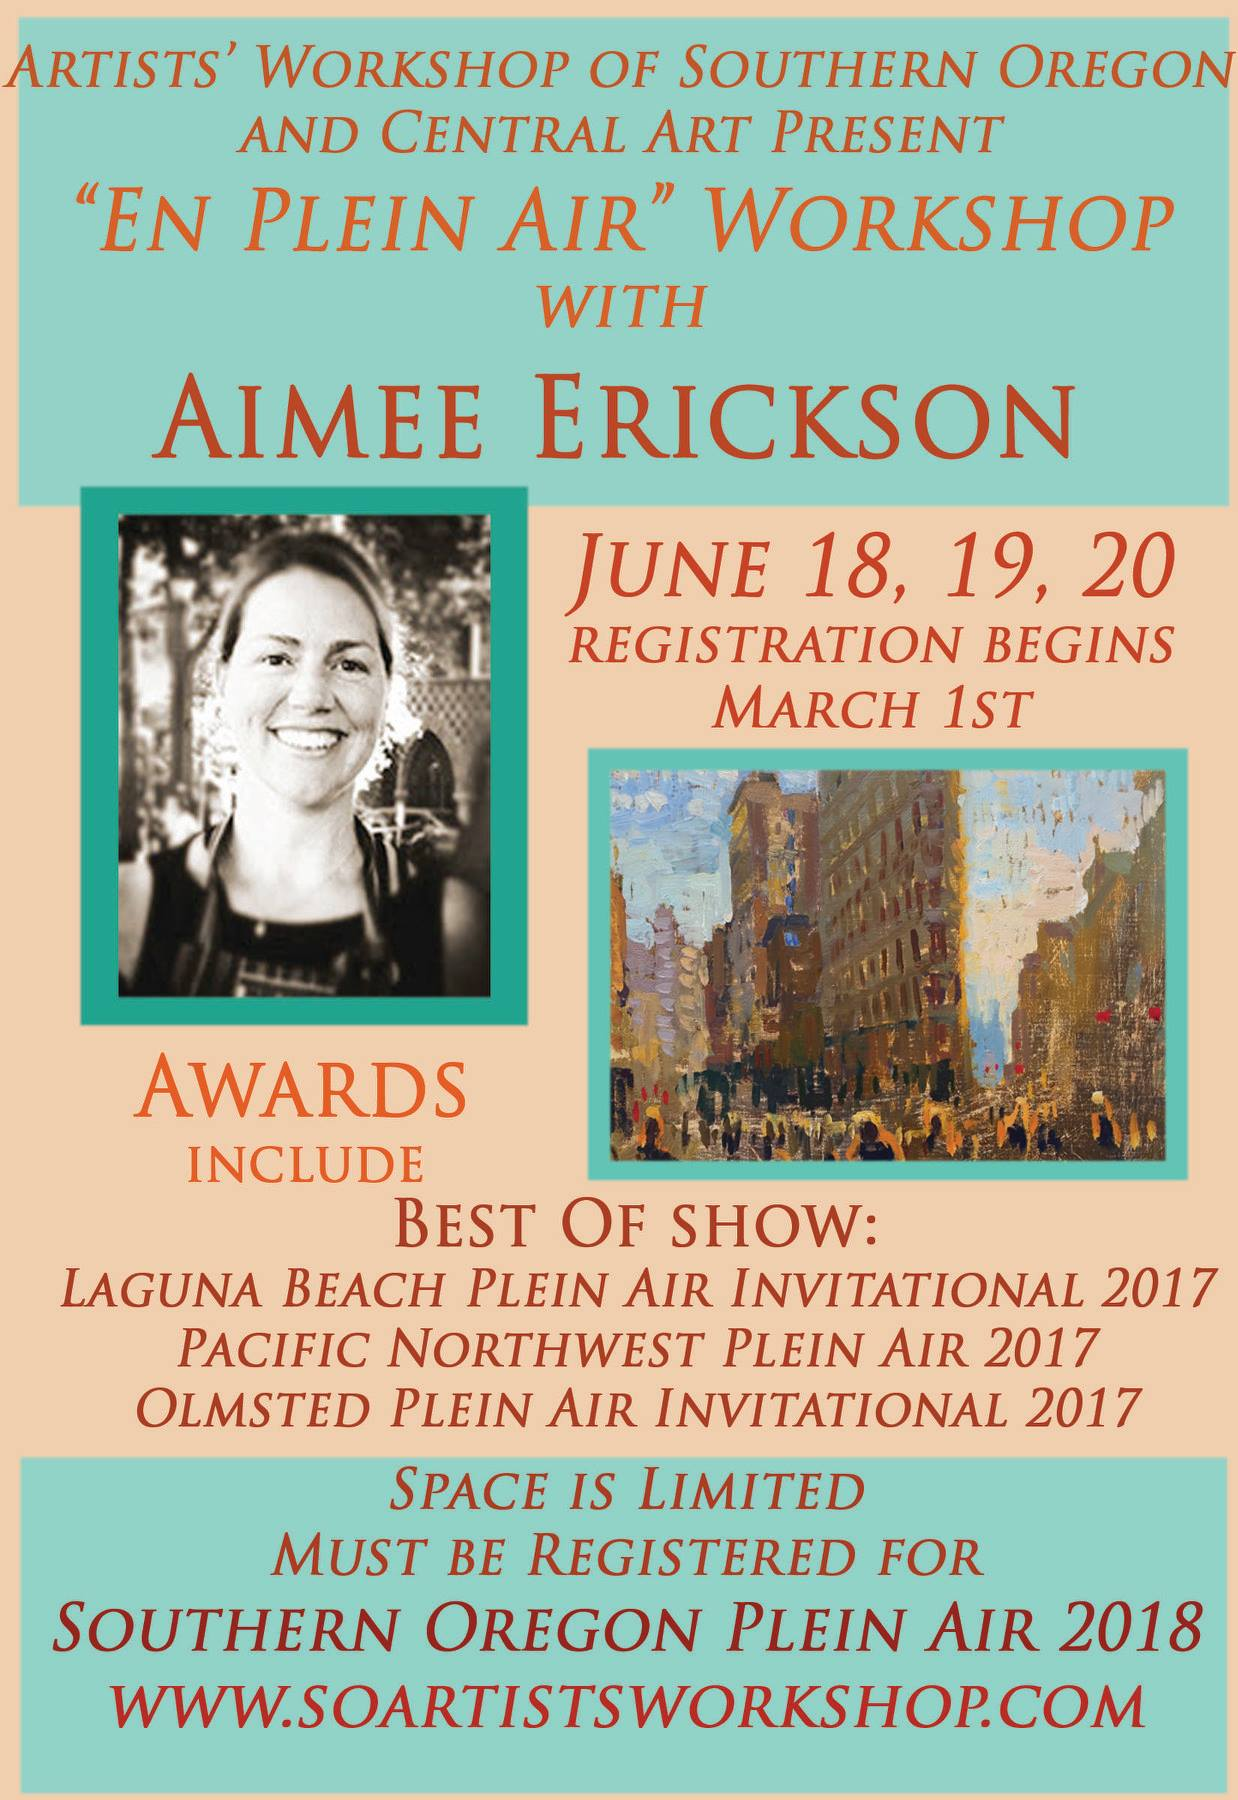 Upcoming plein air workshops - En Plein Air with Aimee Erickson